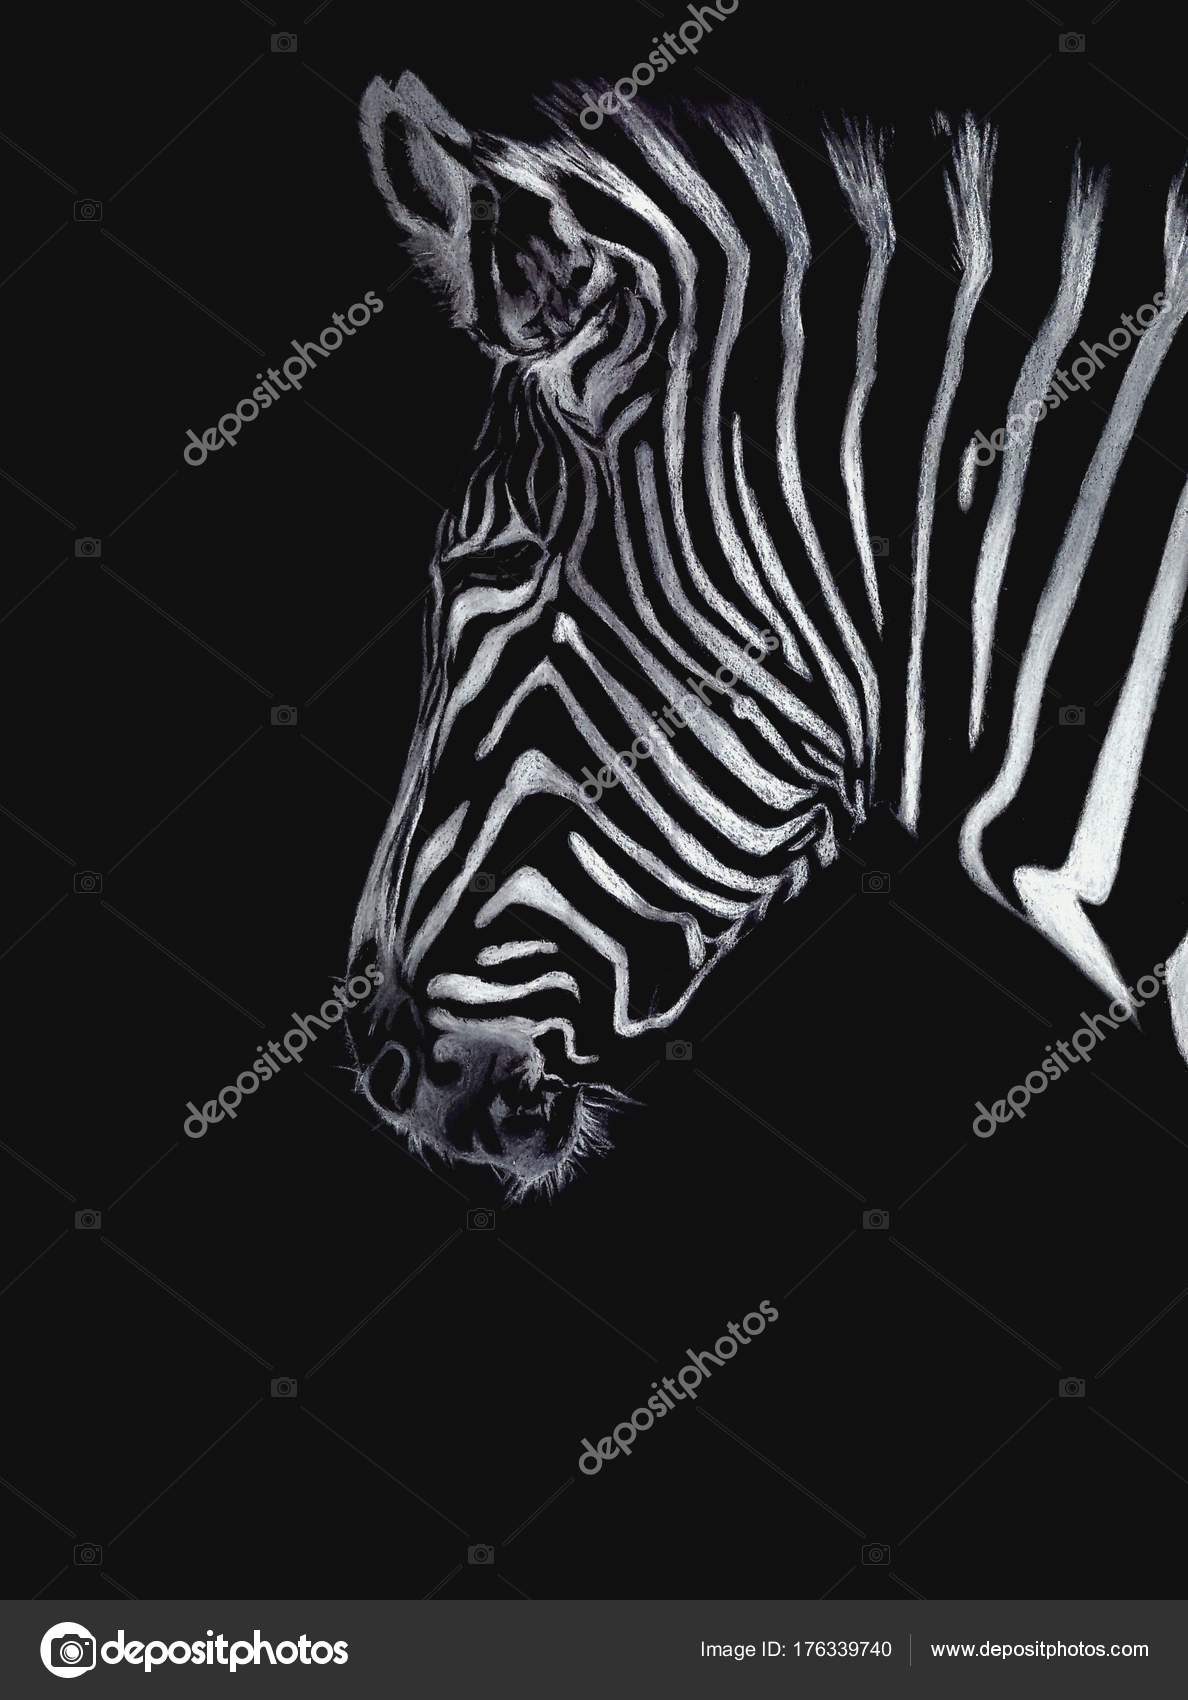 Hand drawn zebra portrait isolated on black background colored pencils and pastel drawing animals illustration for interiors photo by